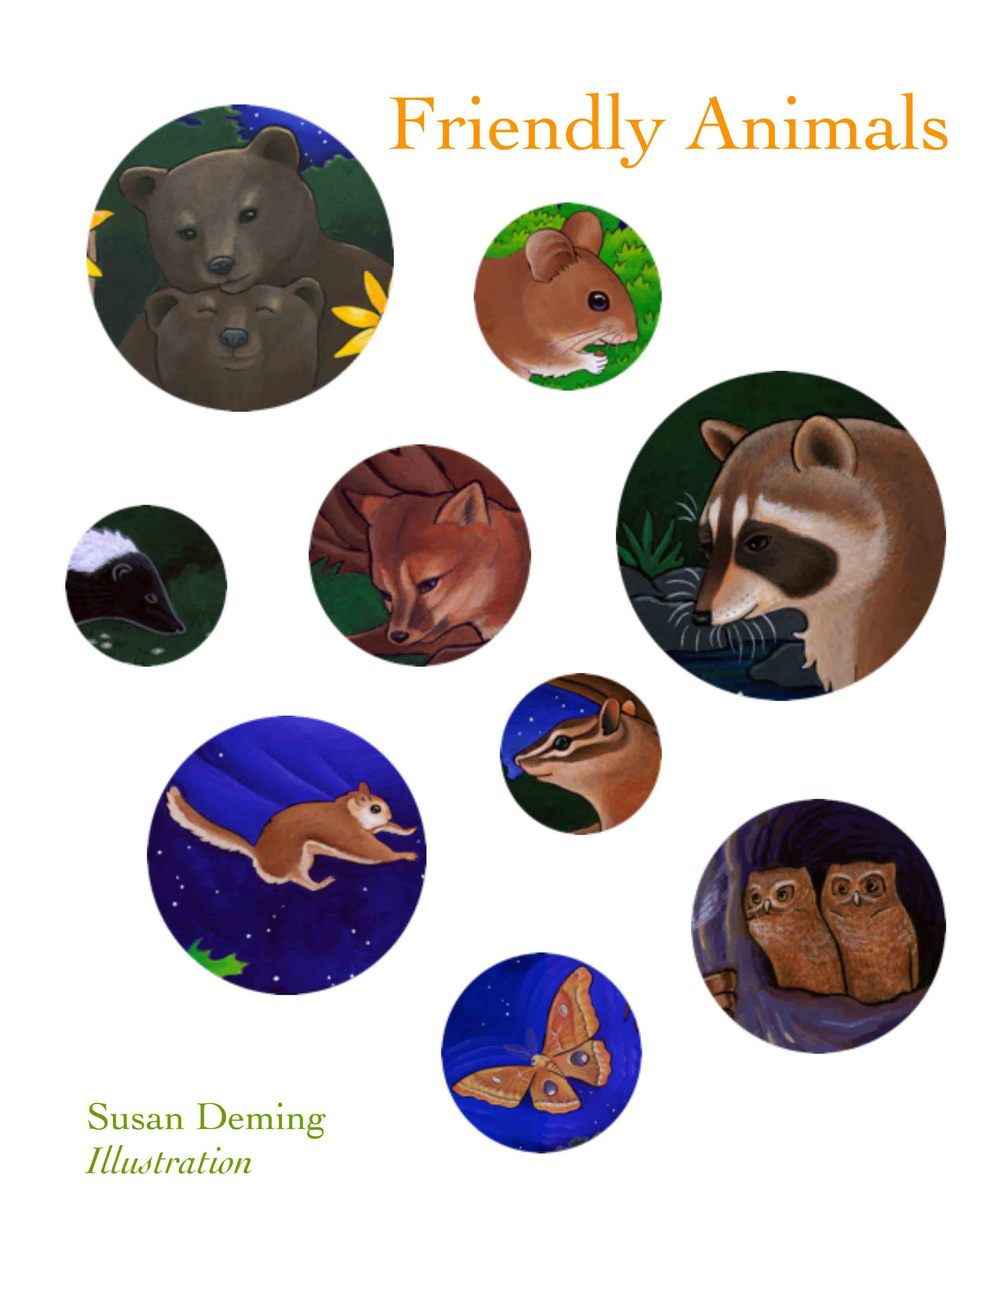 shining moon presentation friendly animals2.jpg